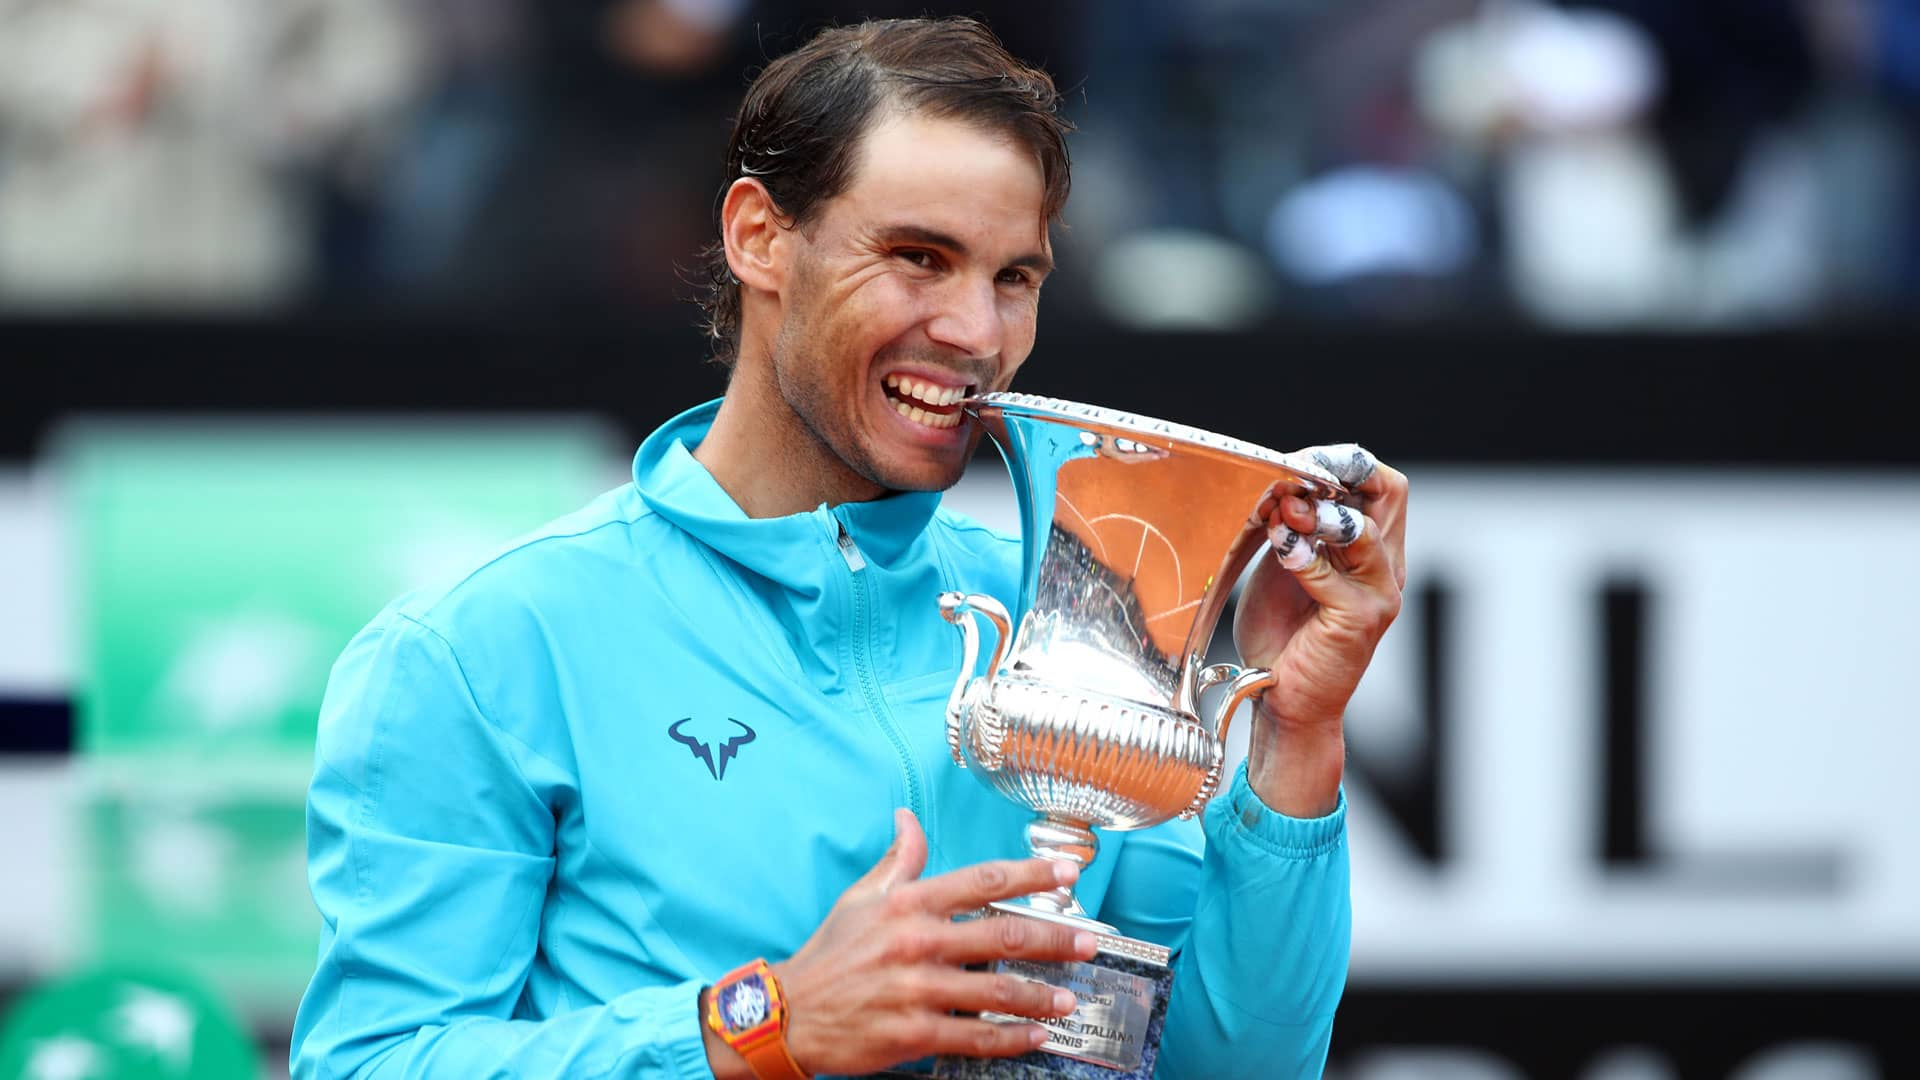 Rafael Nadal holds the trophy in Rome 2019.